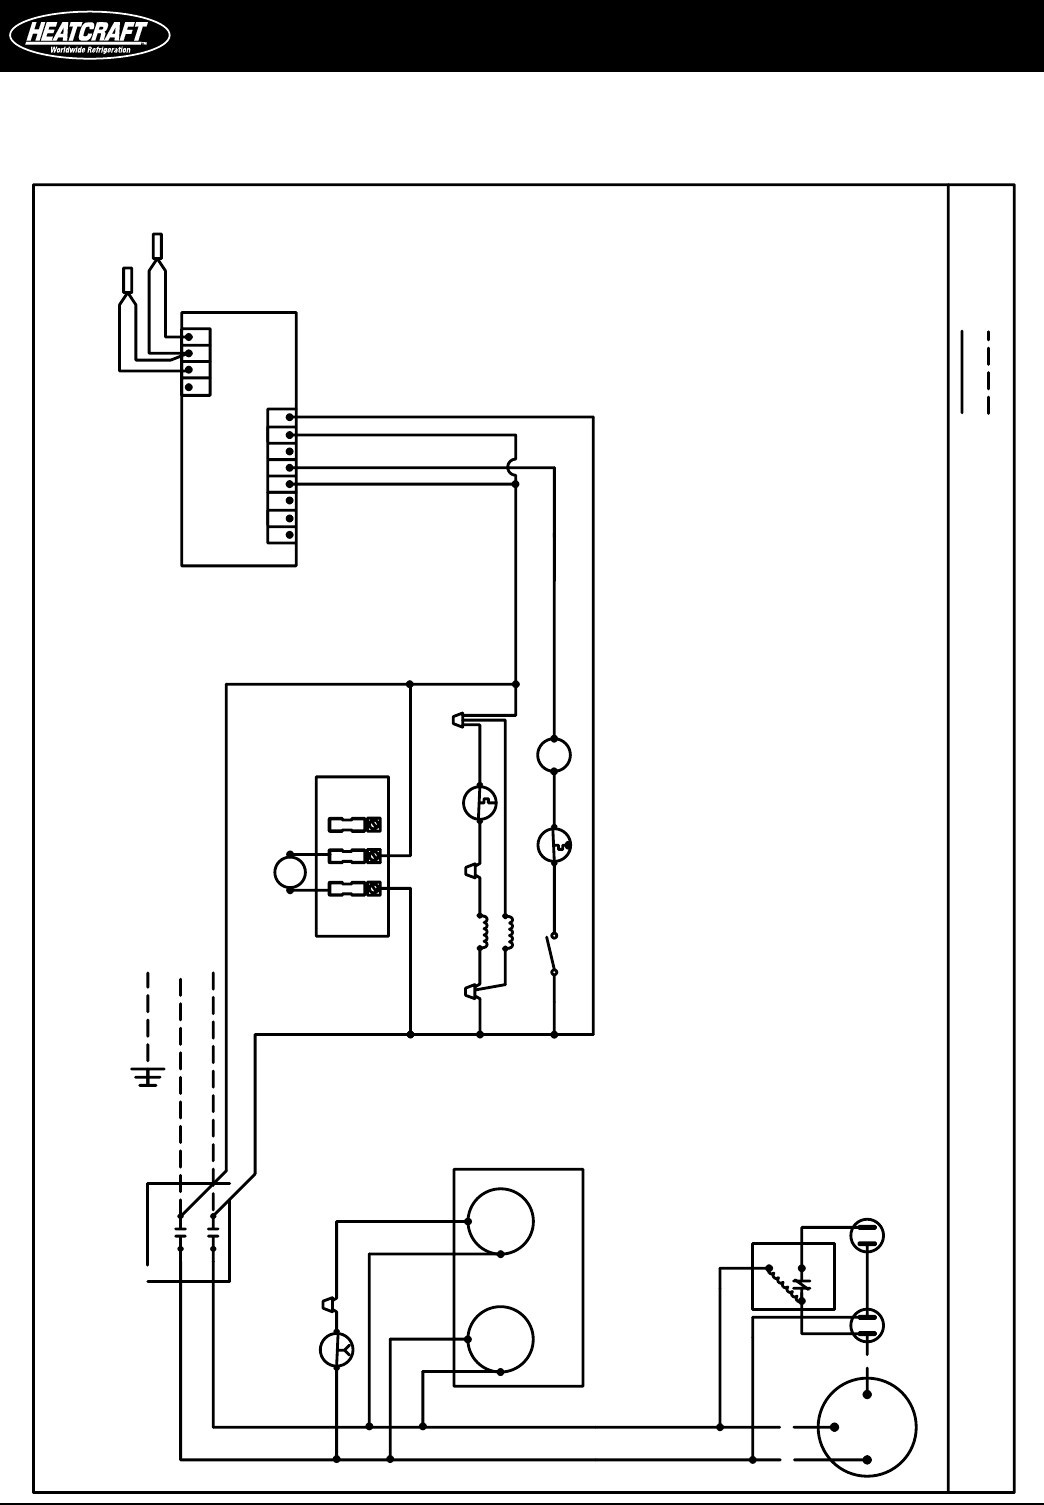 heatcraft electric defrost wiring diagram